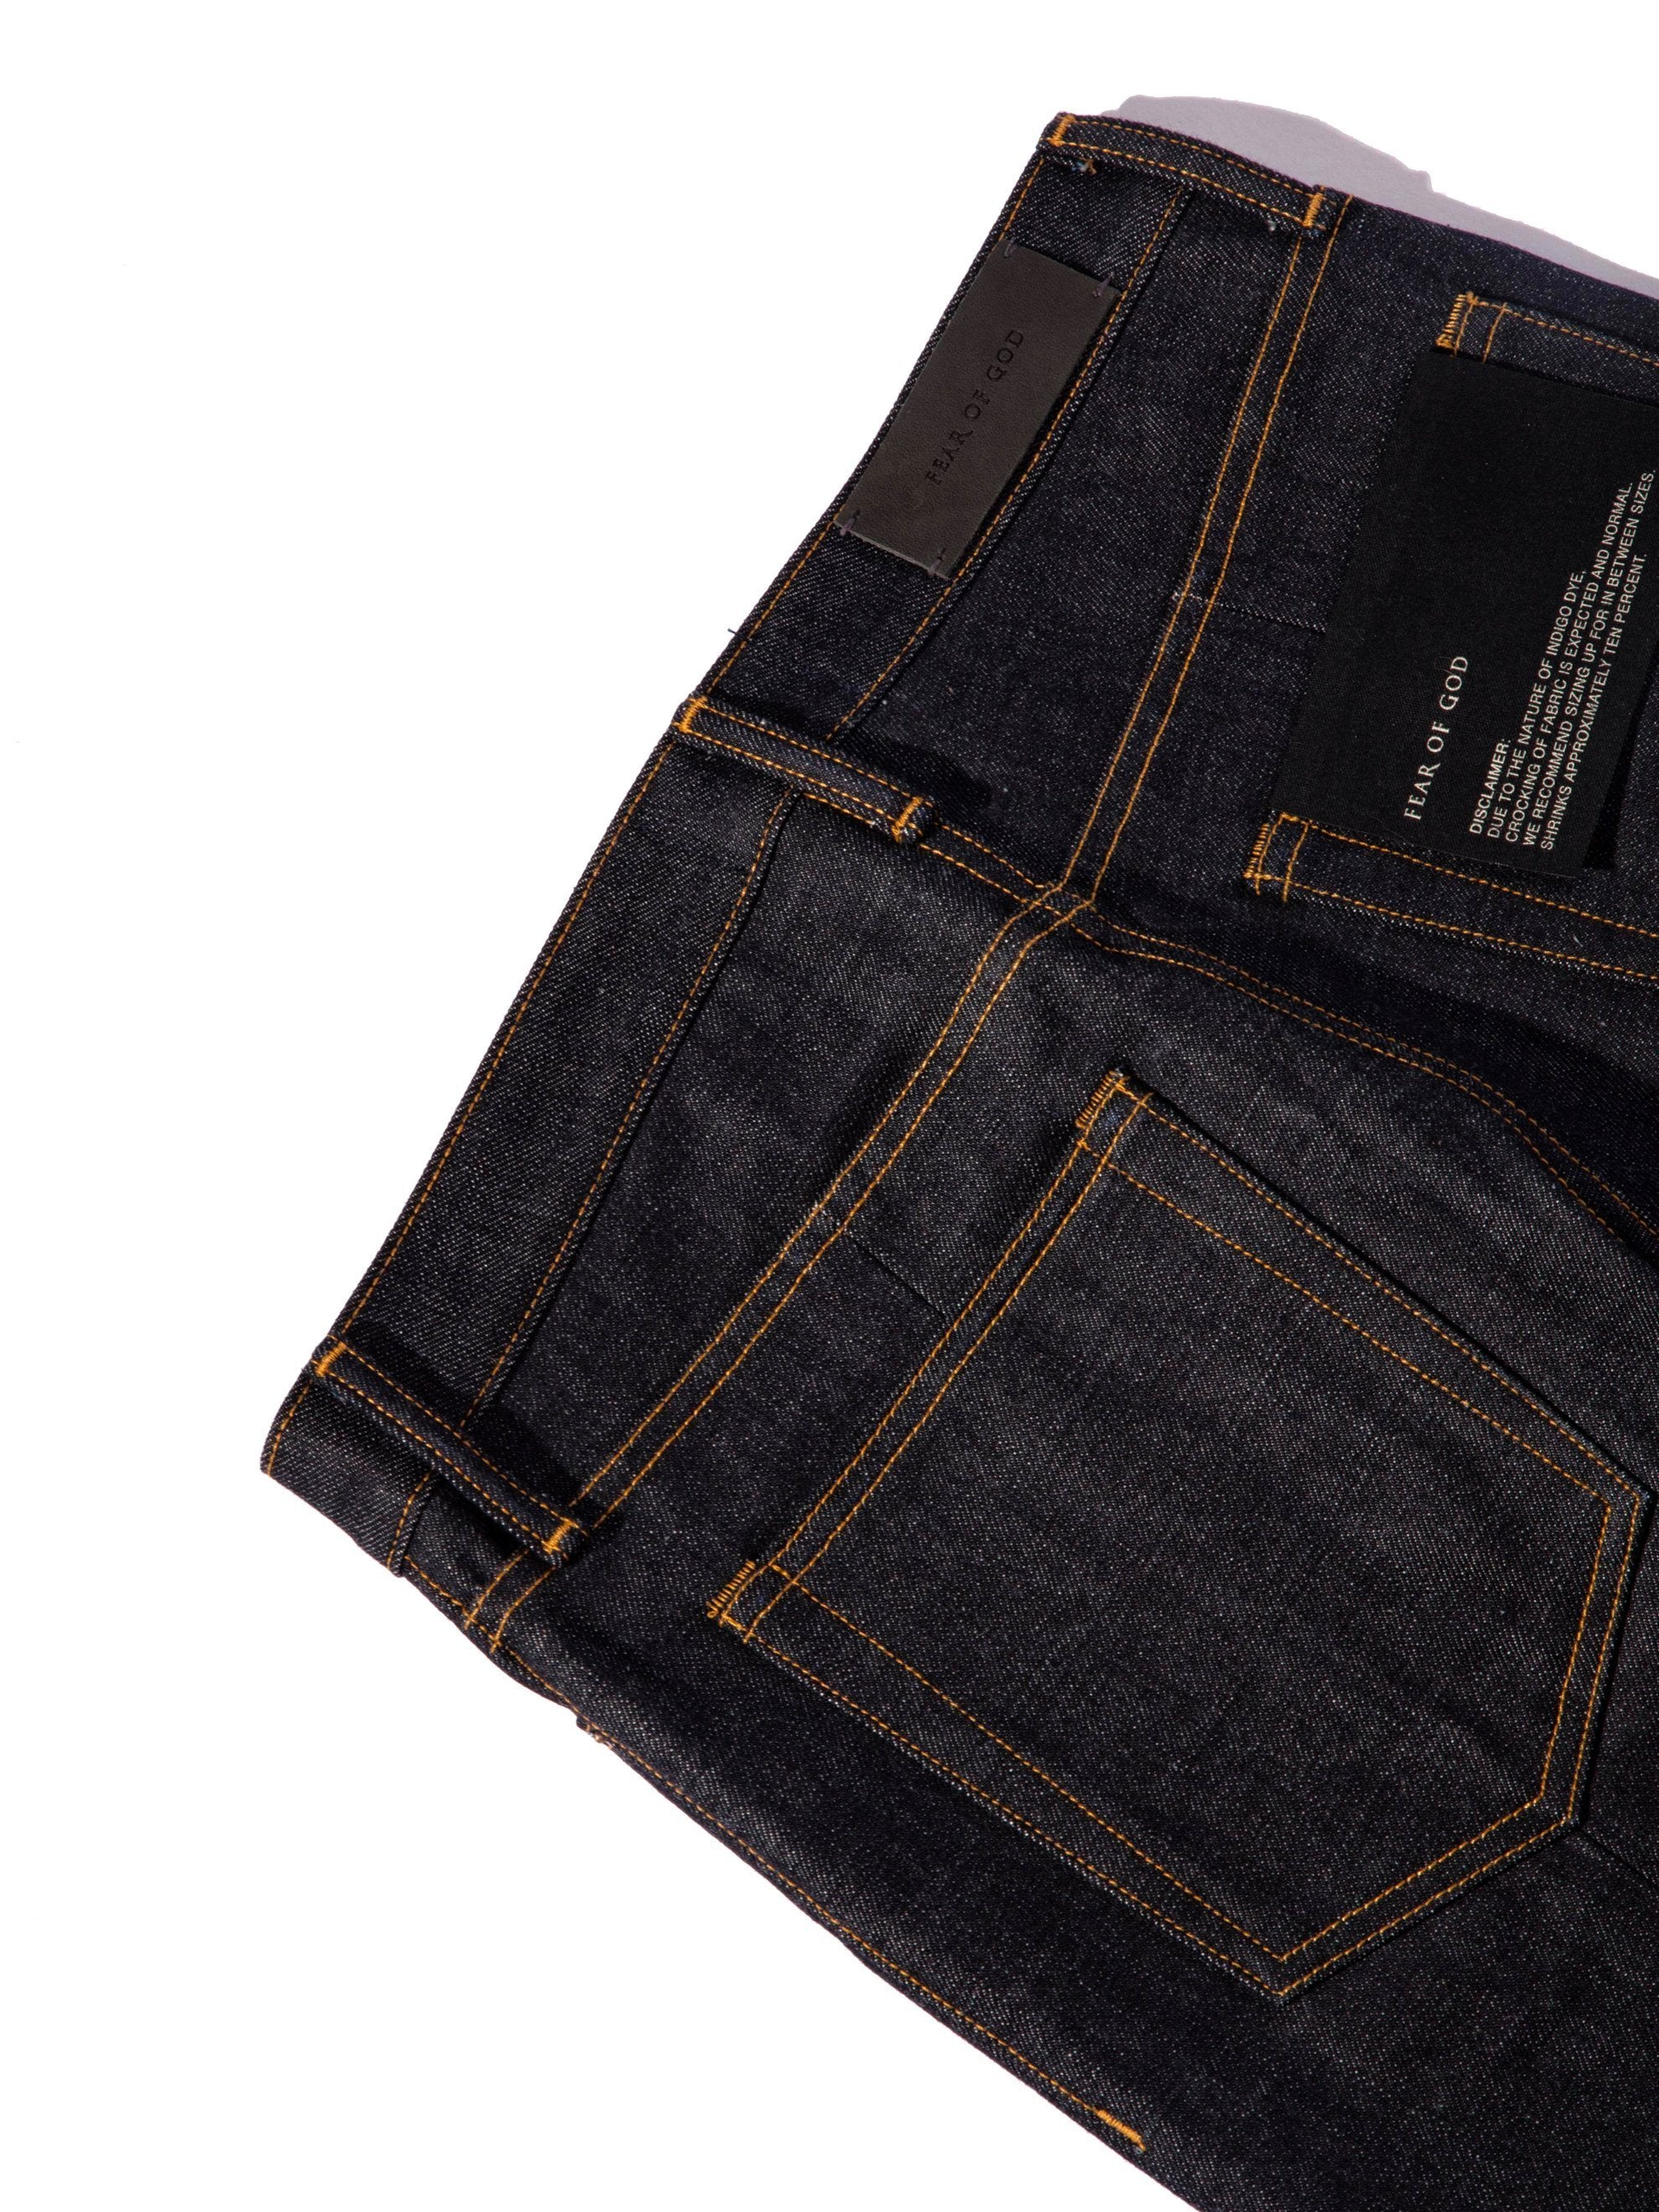 Raw Indigo Selvedge Paneled Denim Jean 12